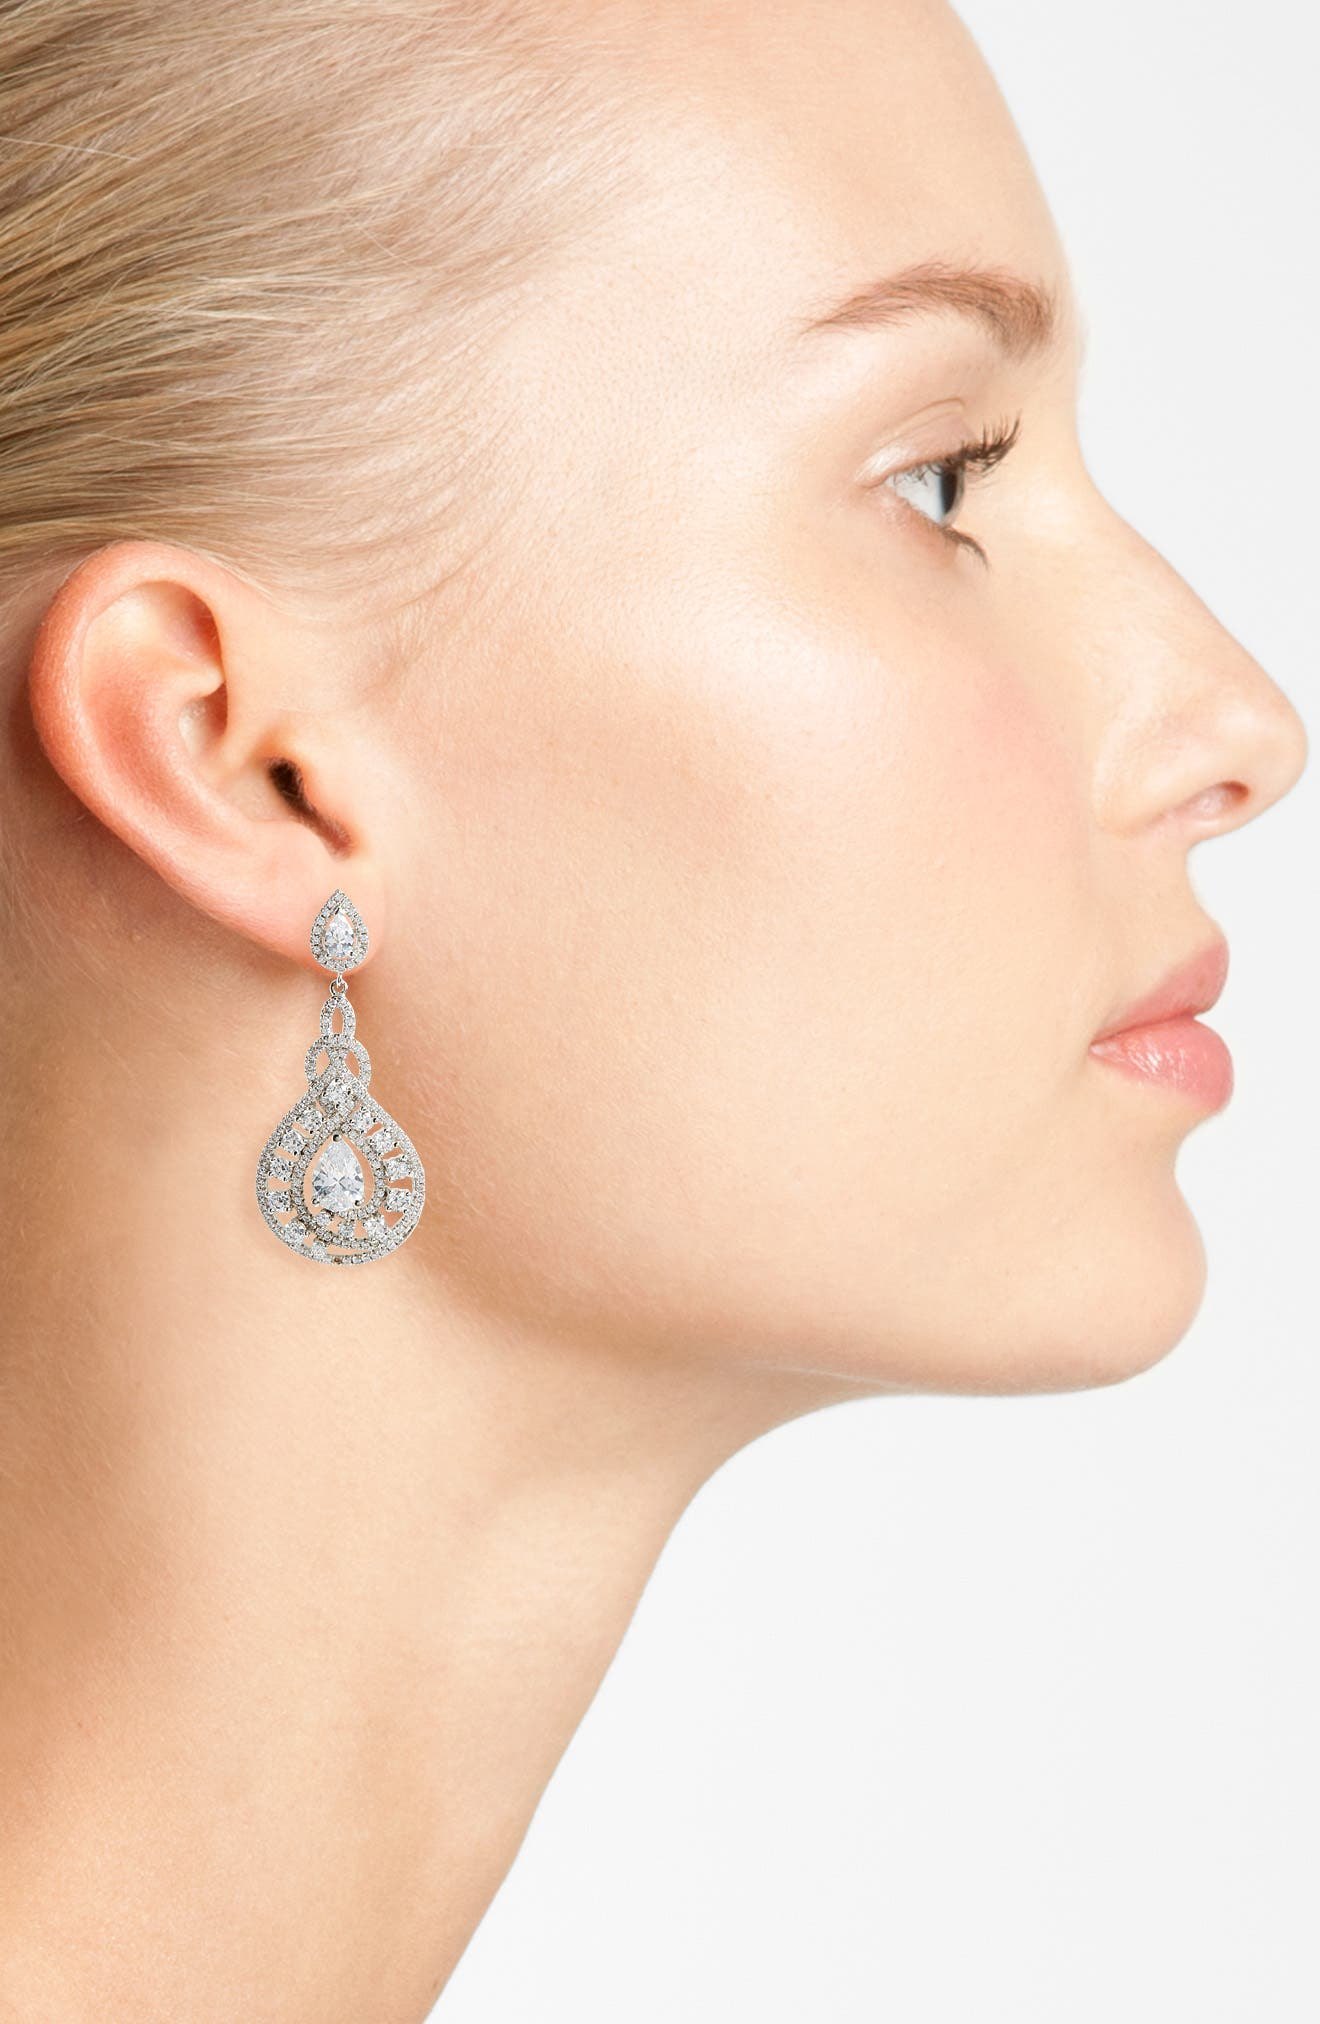 Glamorous Drop Earrings,                             Alternate thumbnail 2, color,                             Silver